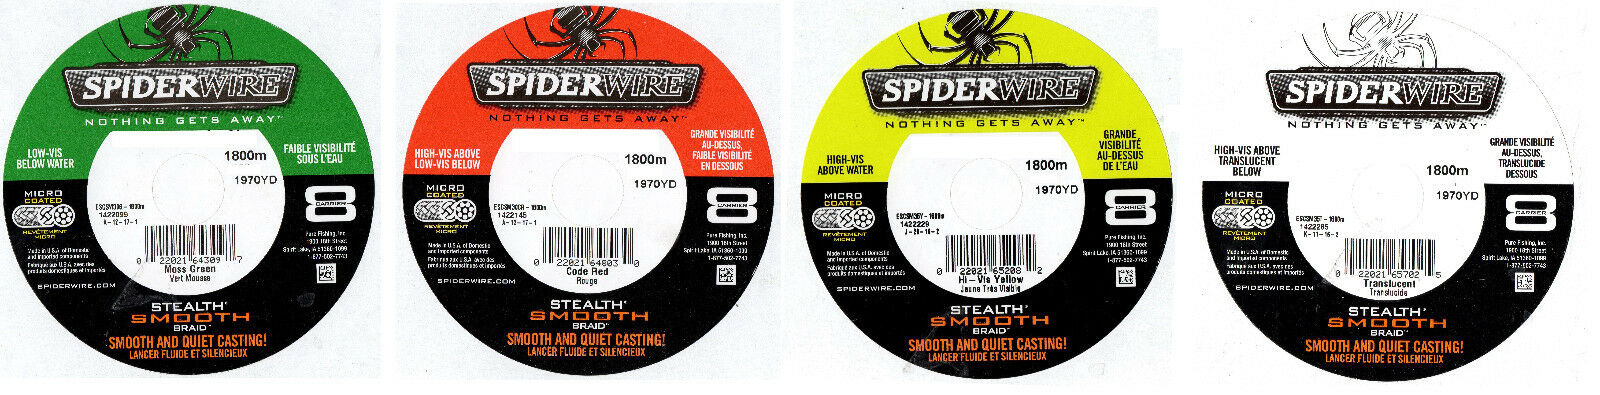 Spiderwire Stealth Smooth 8  Braid 3000m 44lb-108lb Green Red YellowTranslucent  great selection & quick delivery